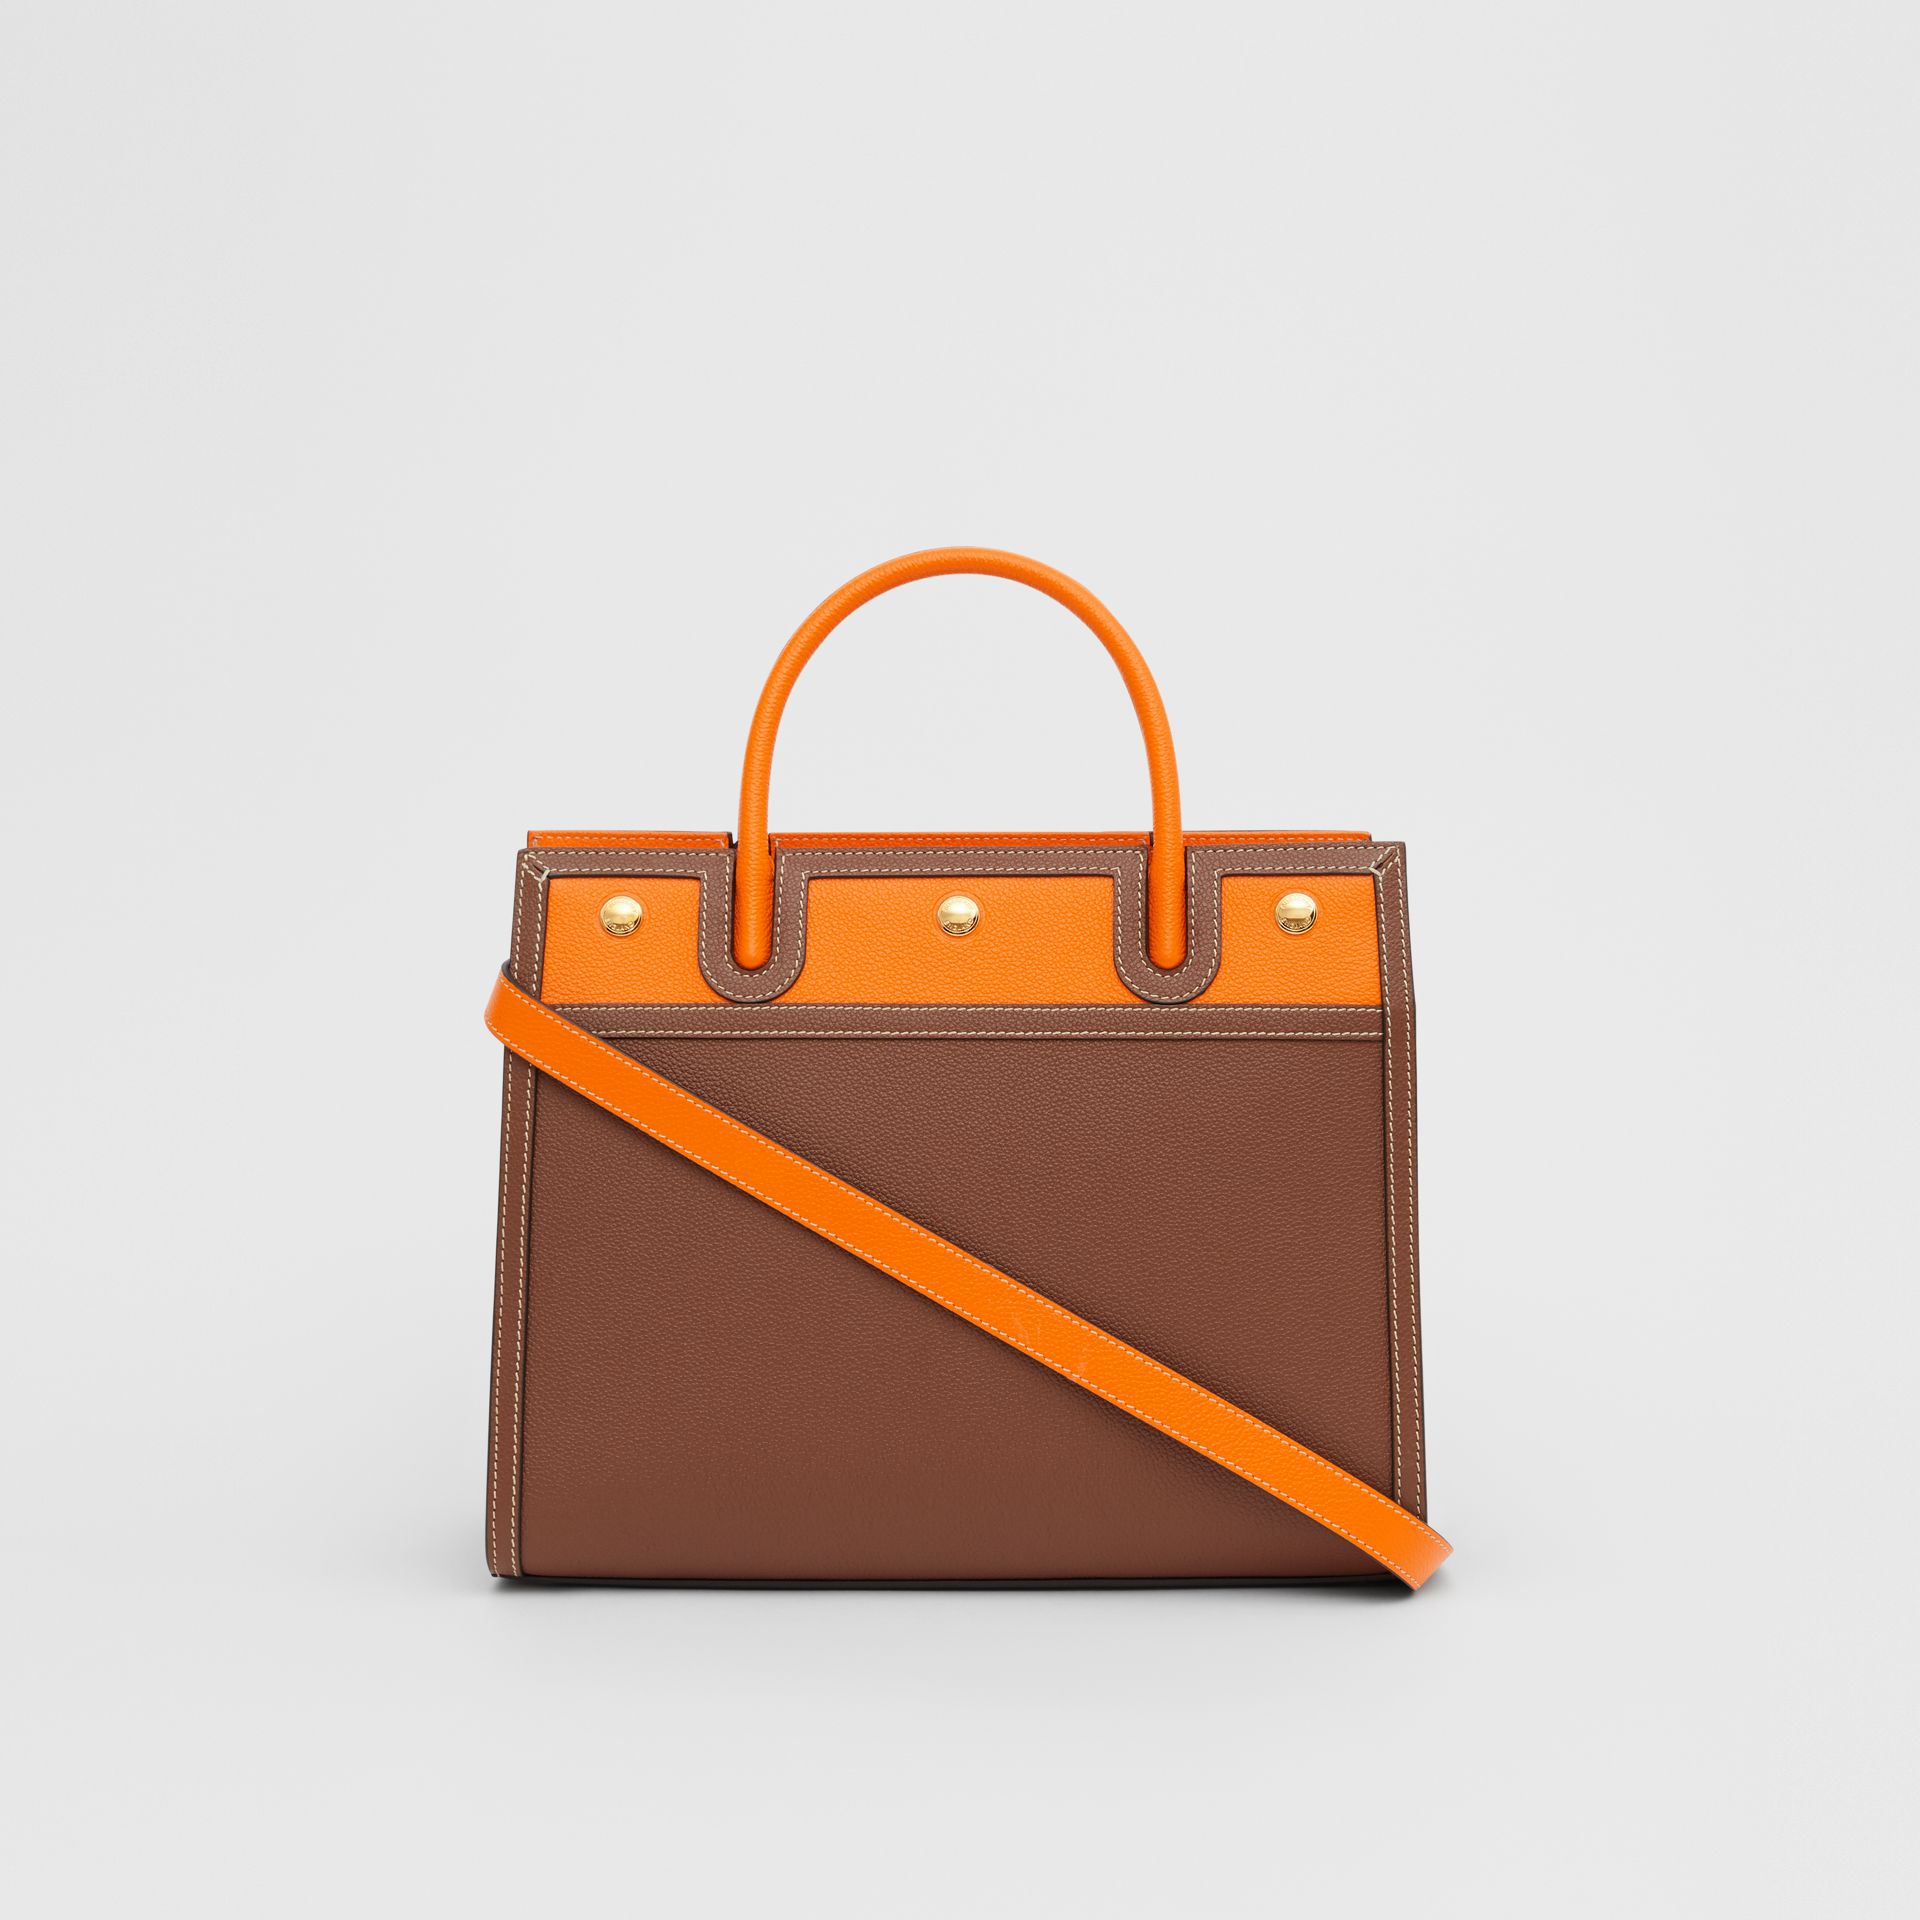 Small Leather Two-handle Title Bag in Tan/bright Orange - Women | Burberry - gallery image 7